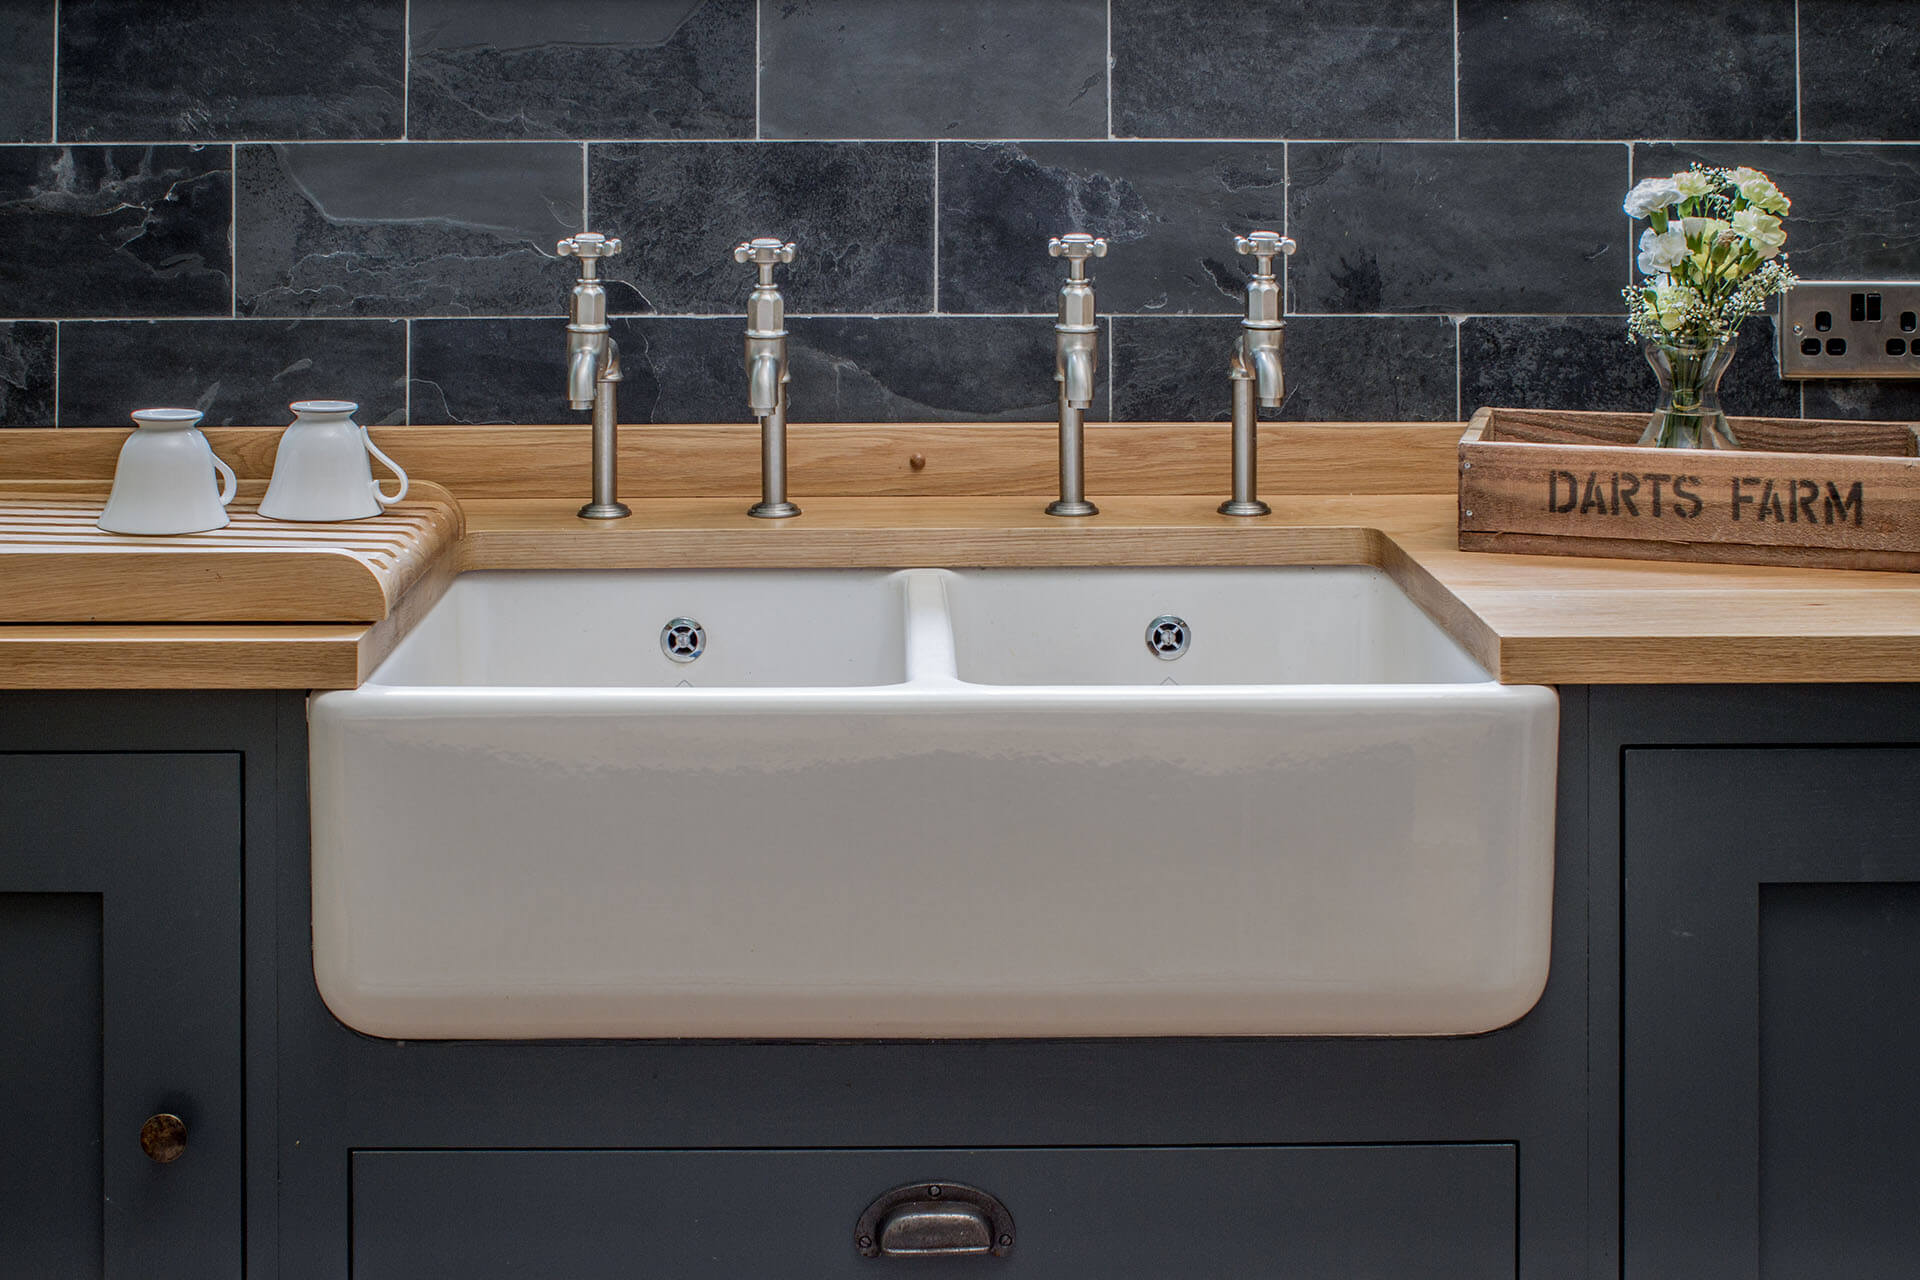 Cotswold Chapel Kitchen with belfast sink and bibcock taps